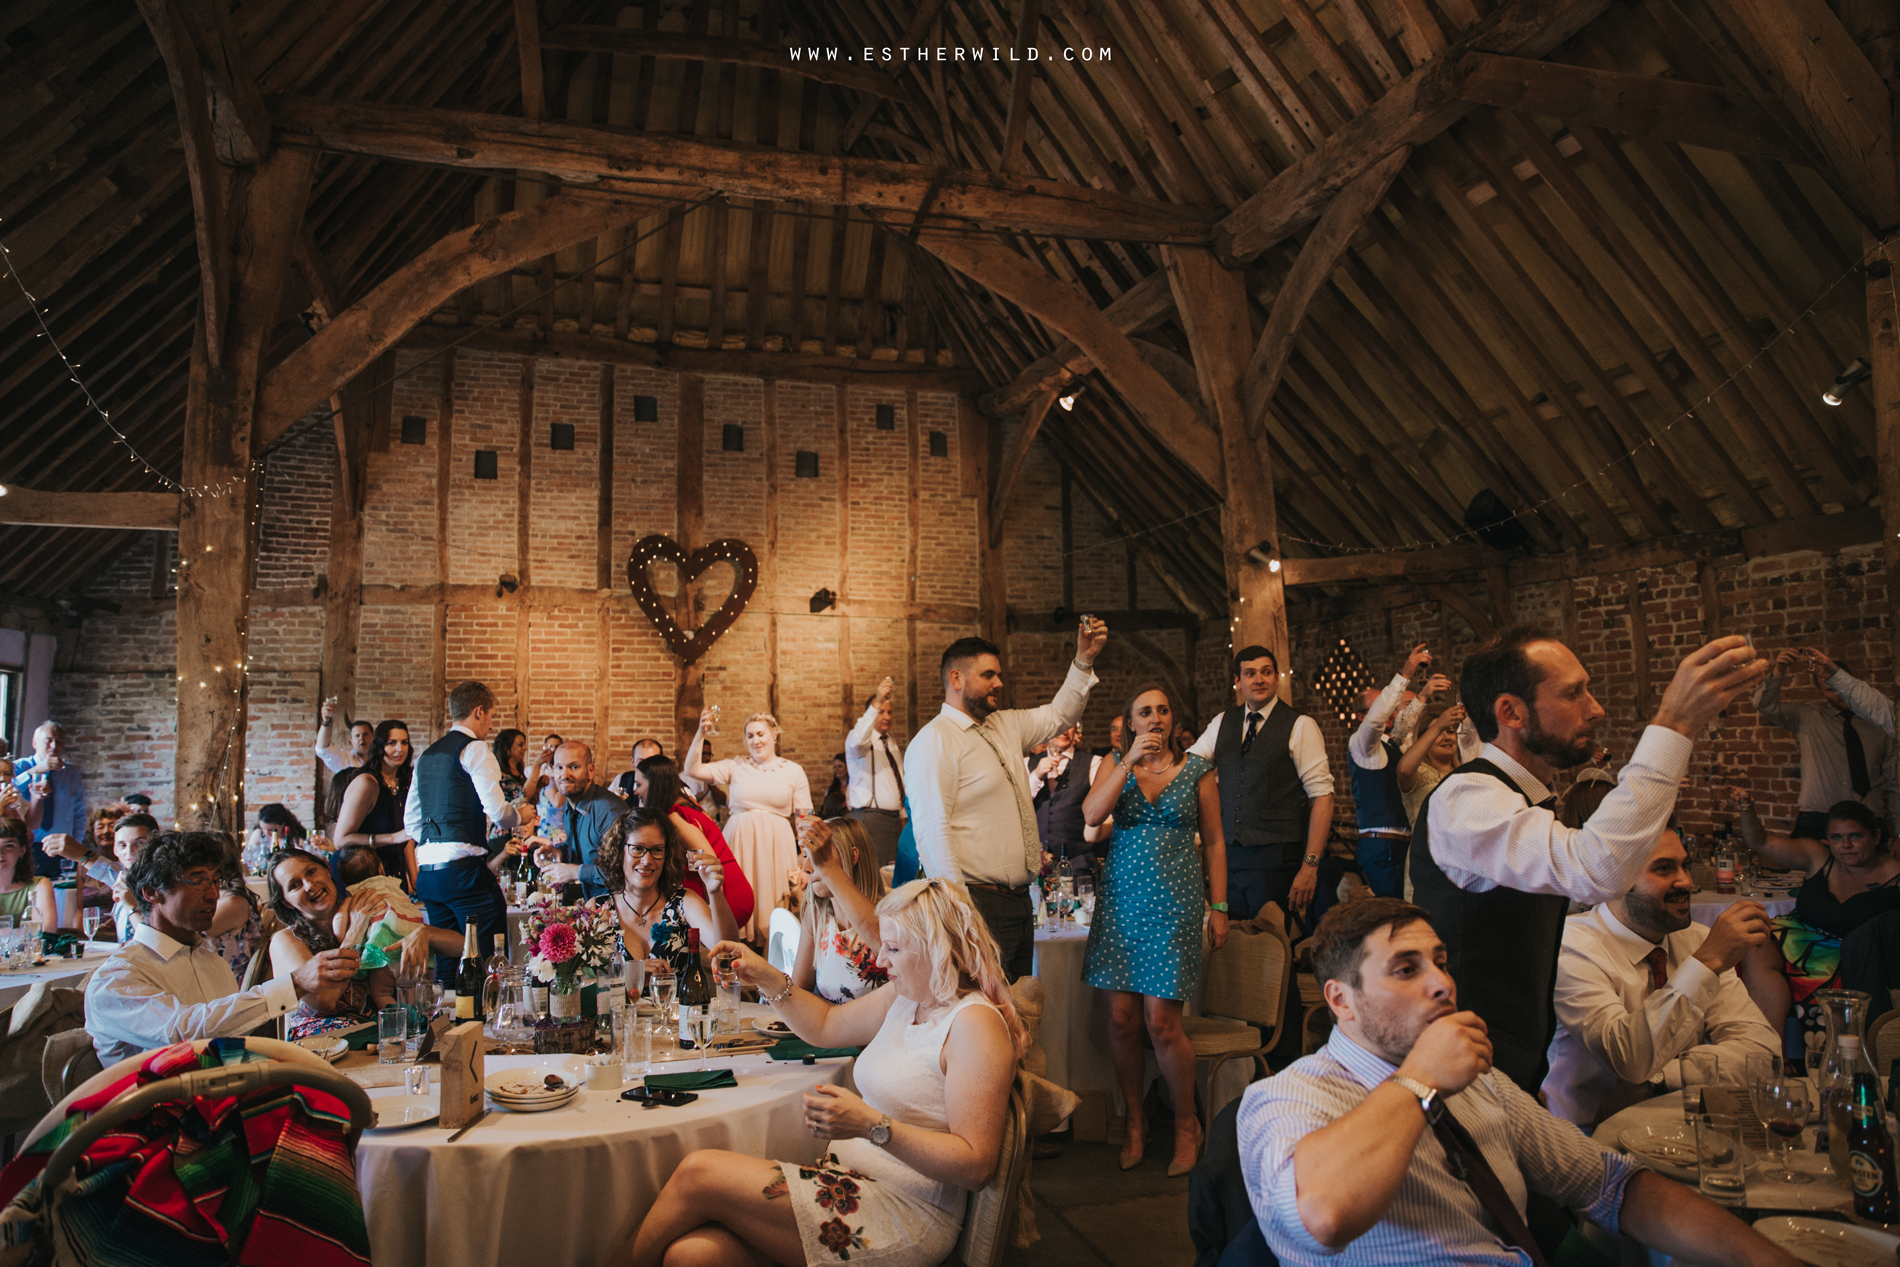 The_Red_Barn_Wedding_Kings_Lynn_Norfolk_IMG_2008.jpg